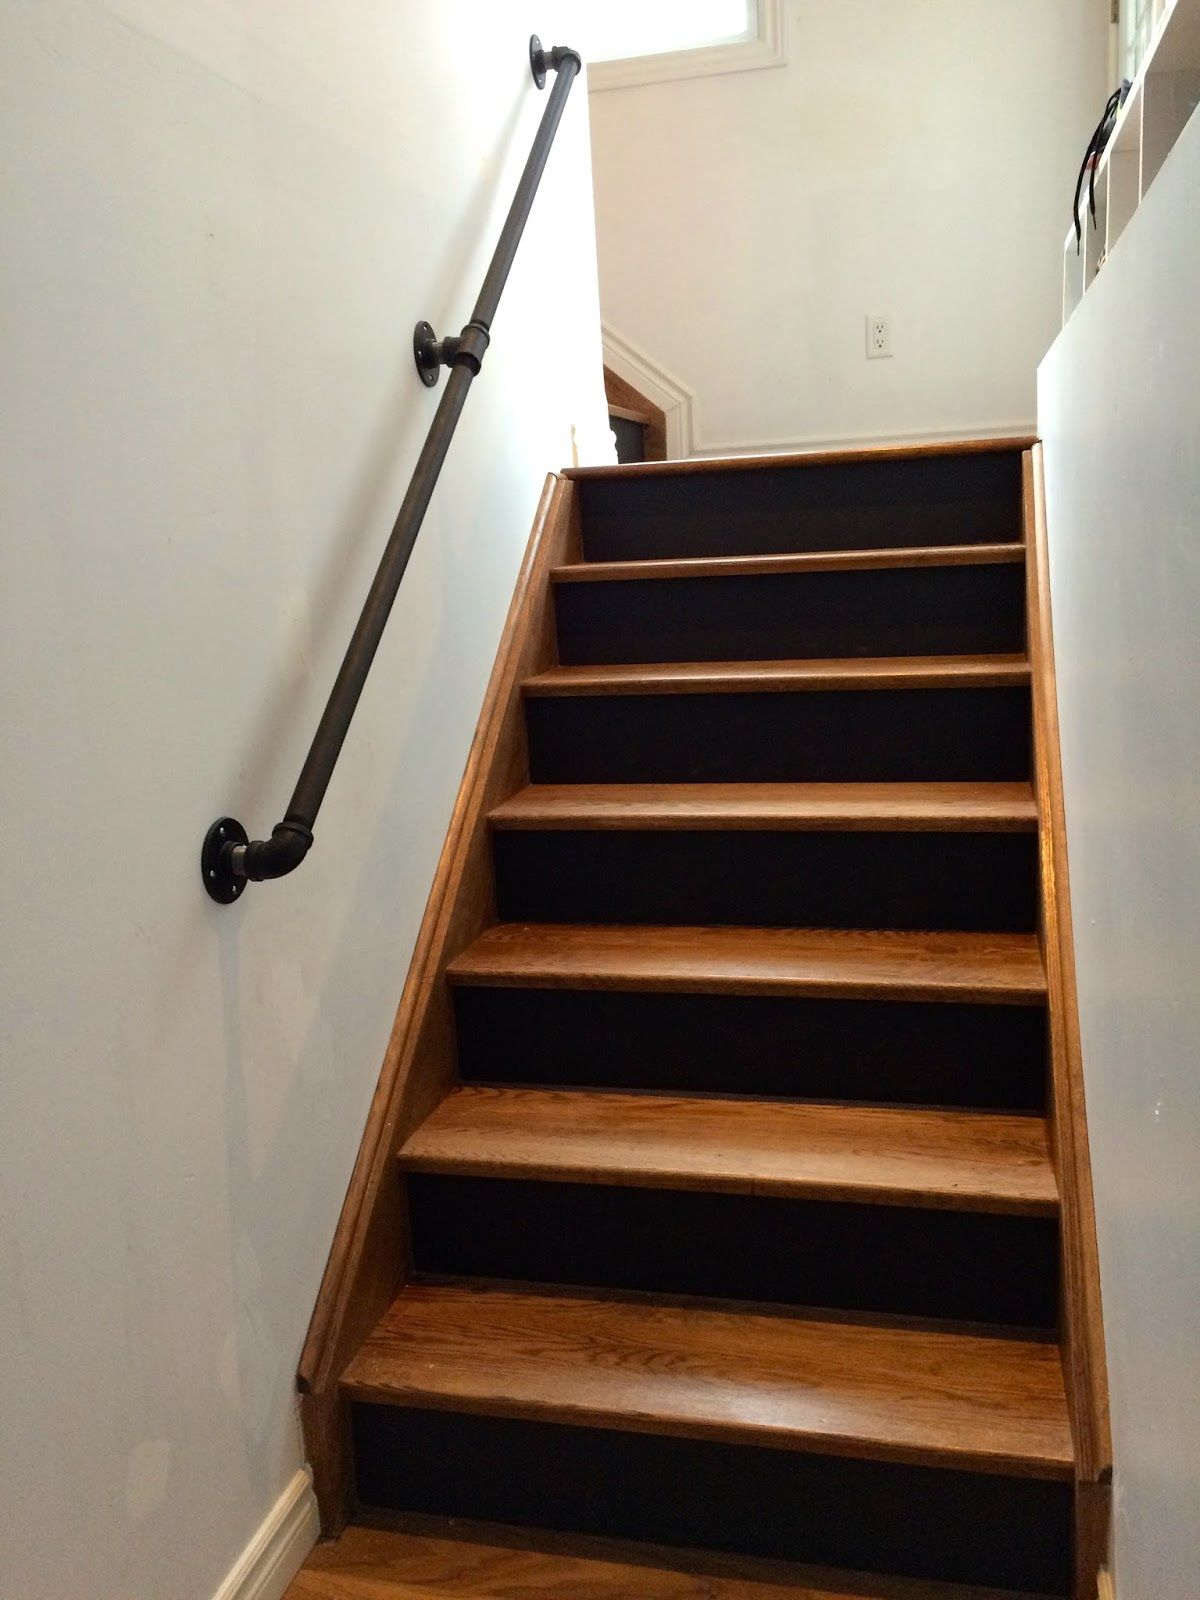 Delicieux Gas Pipe Railing, Walnut Stairs, Black Risers More